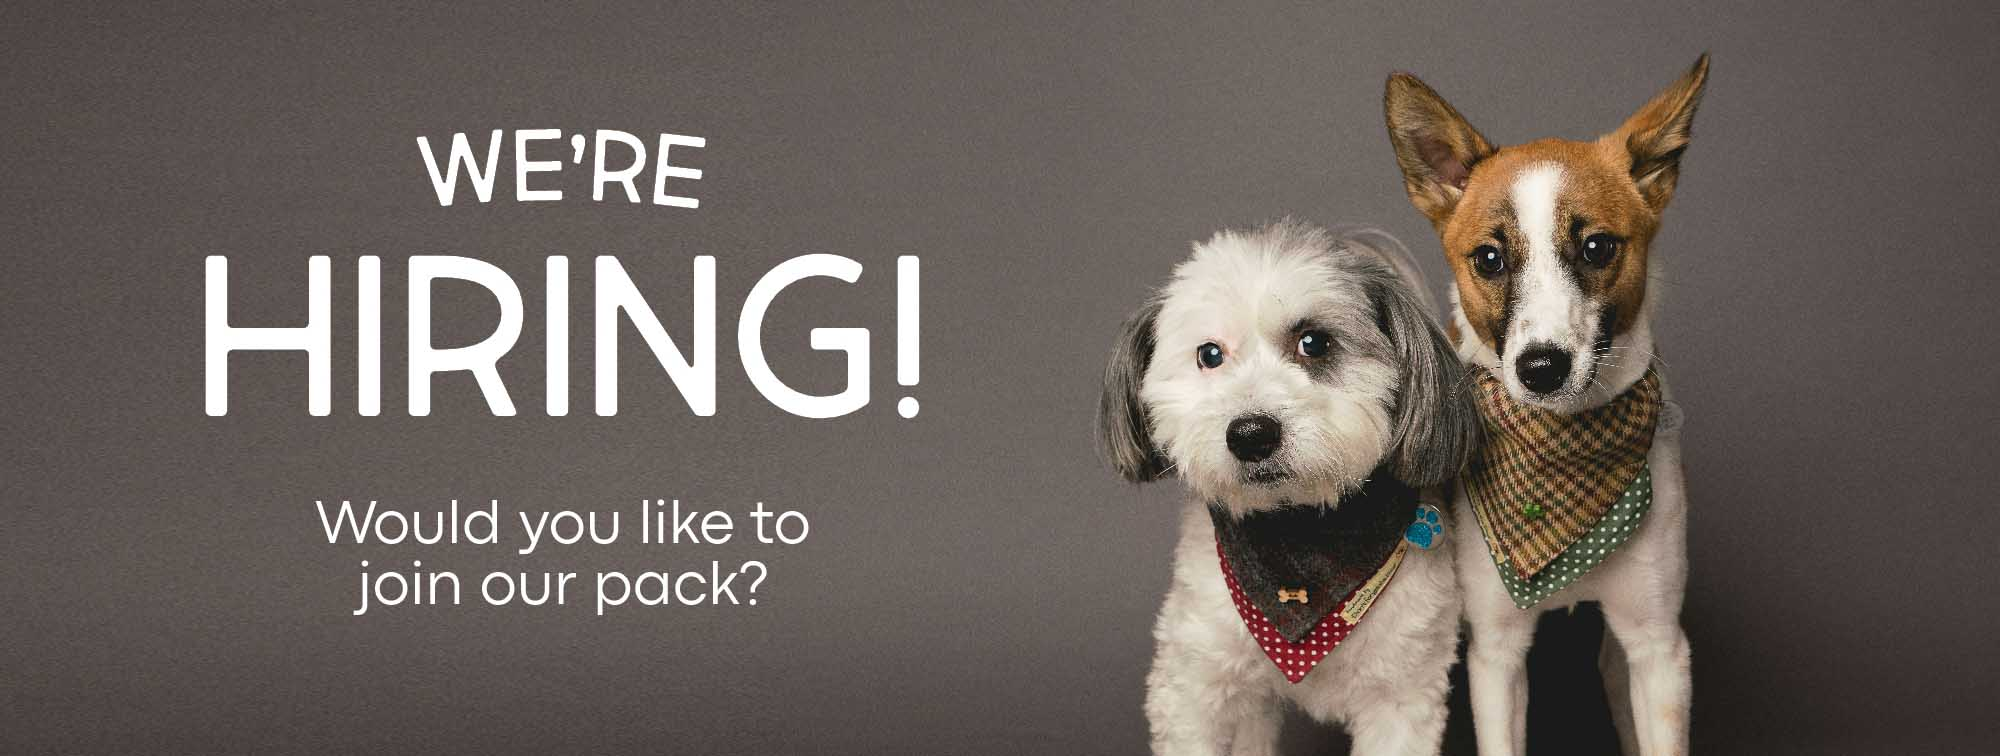 We're Hiring - Join Our Pack